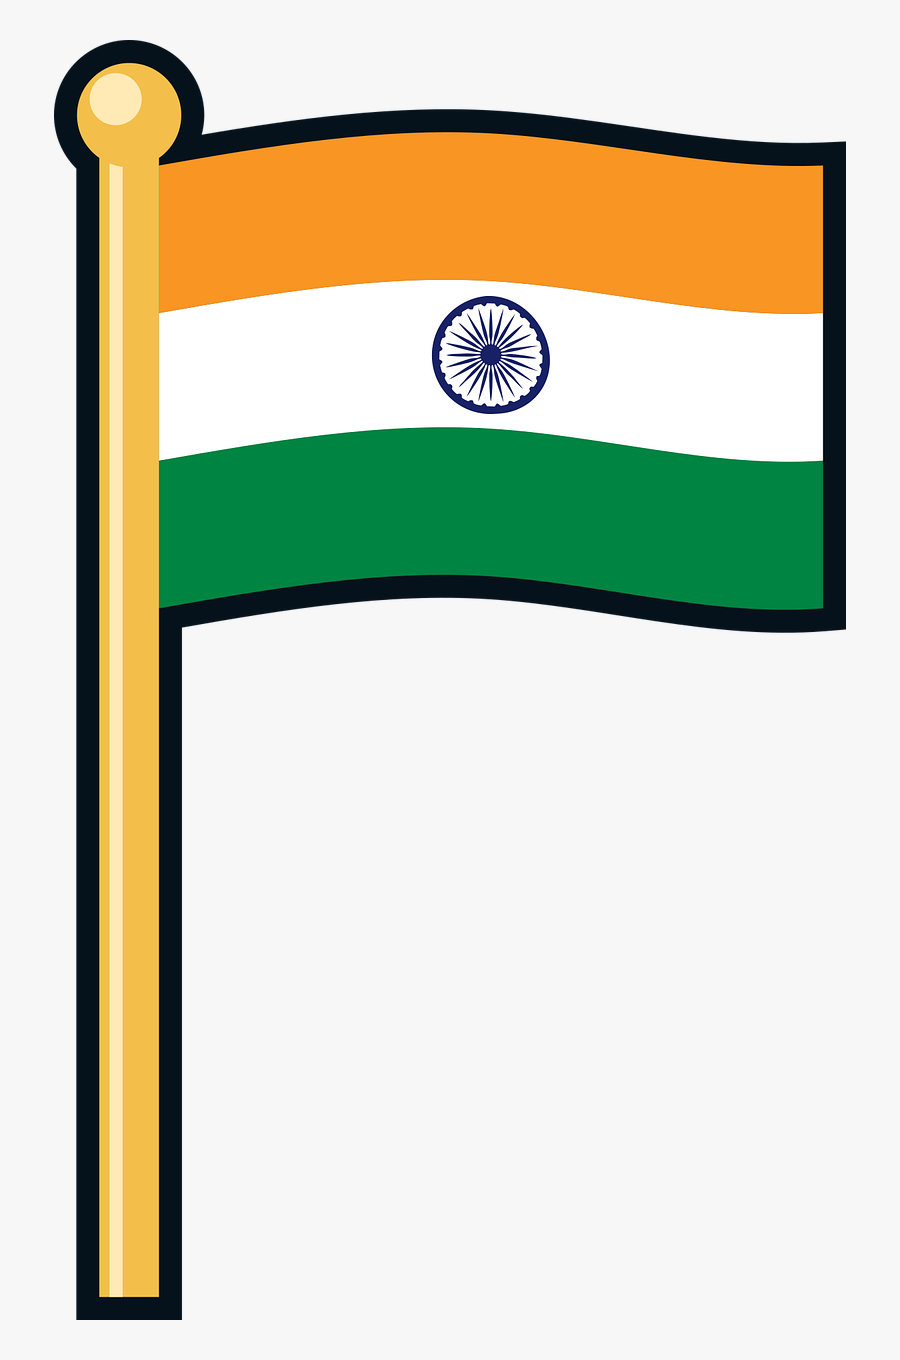 Transparent Indian Feathers Clipart - National Flag Of India Clipart, Transparent Clipart